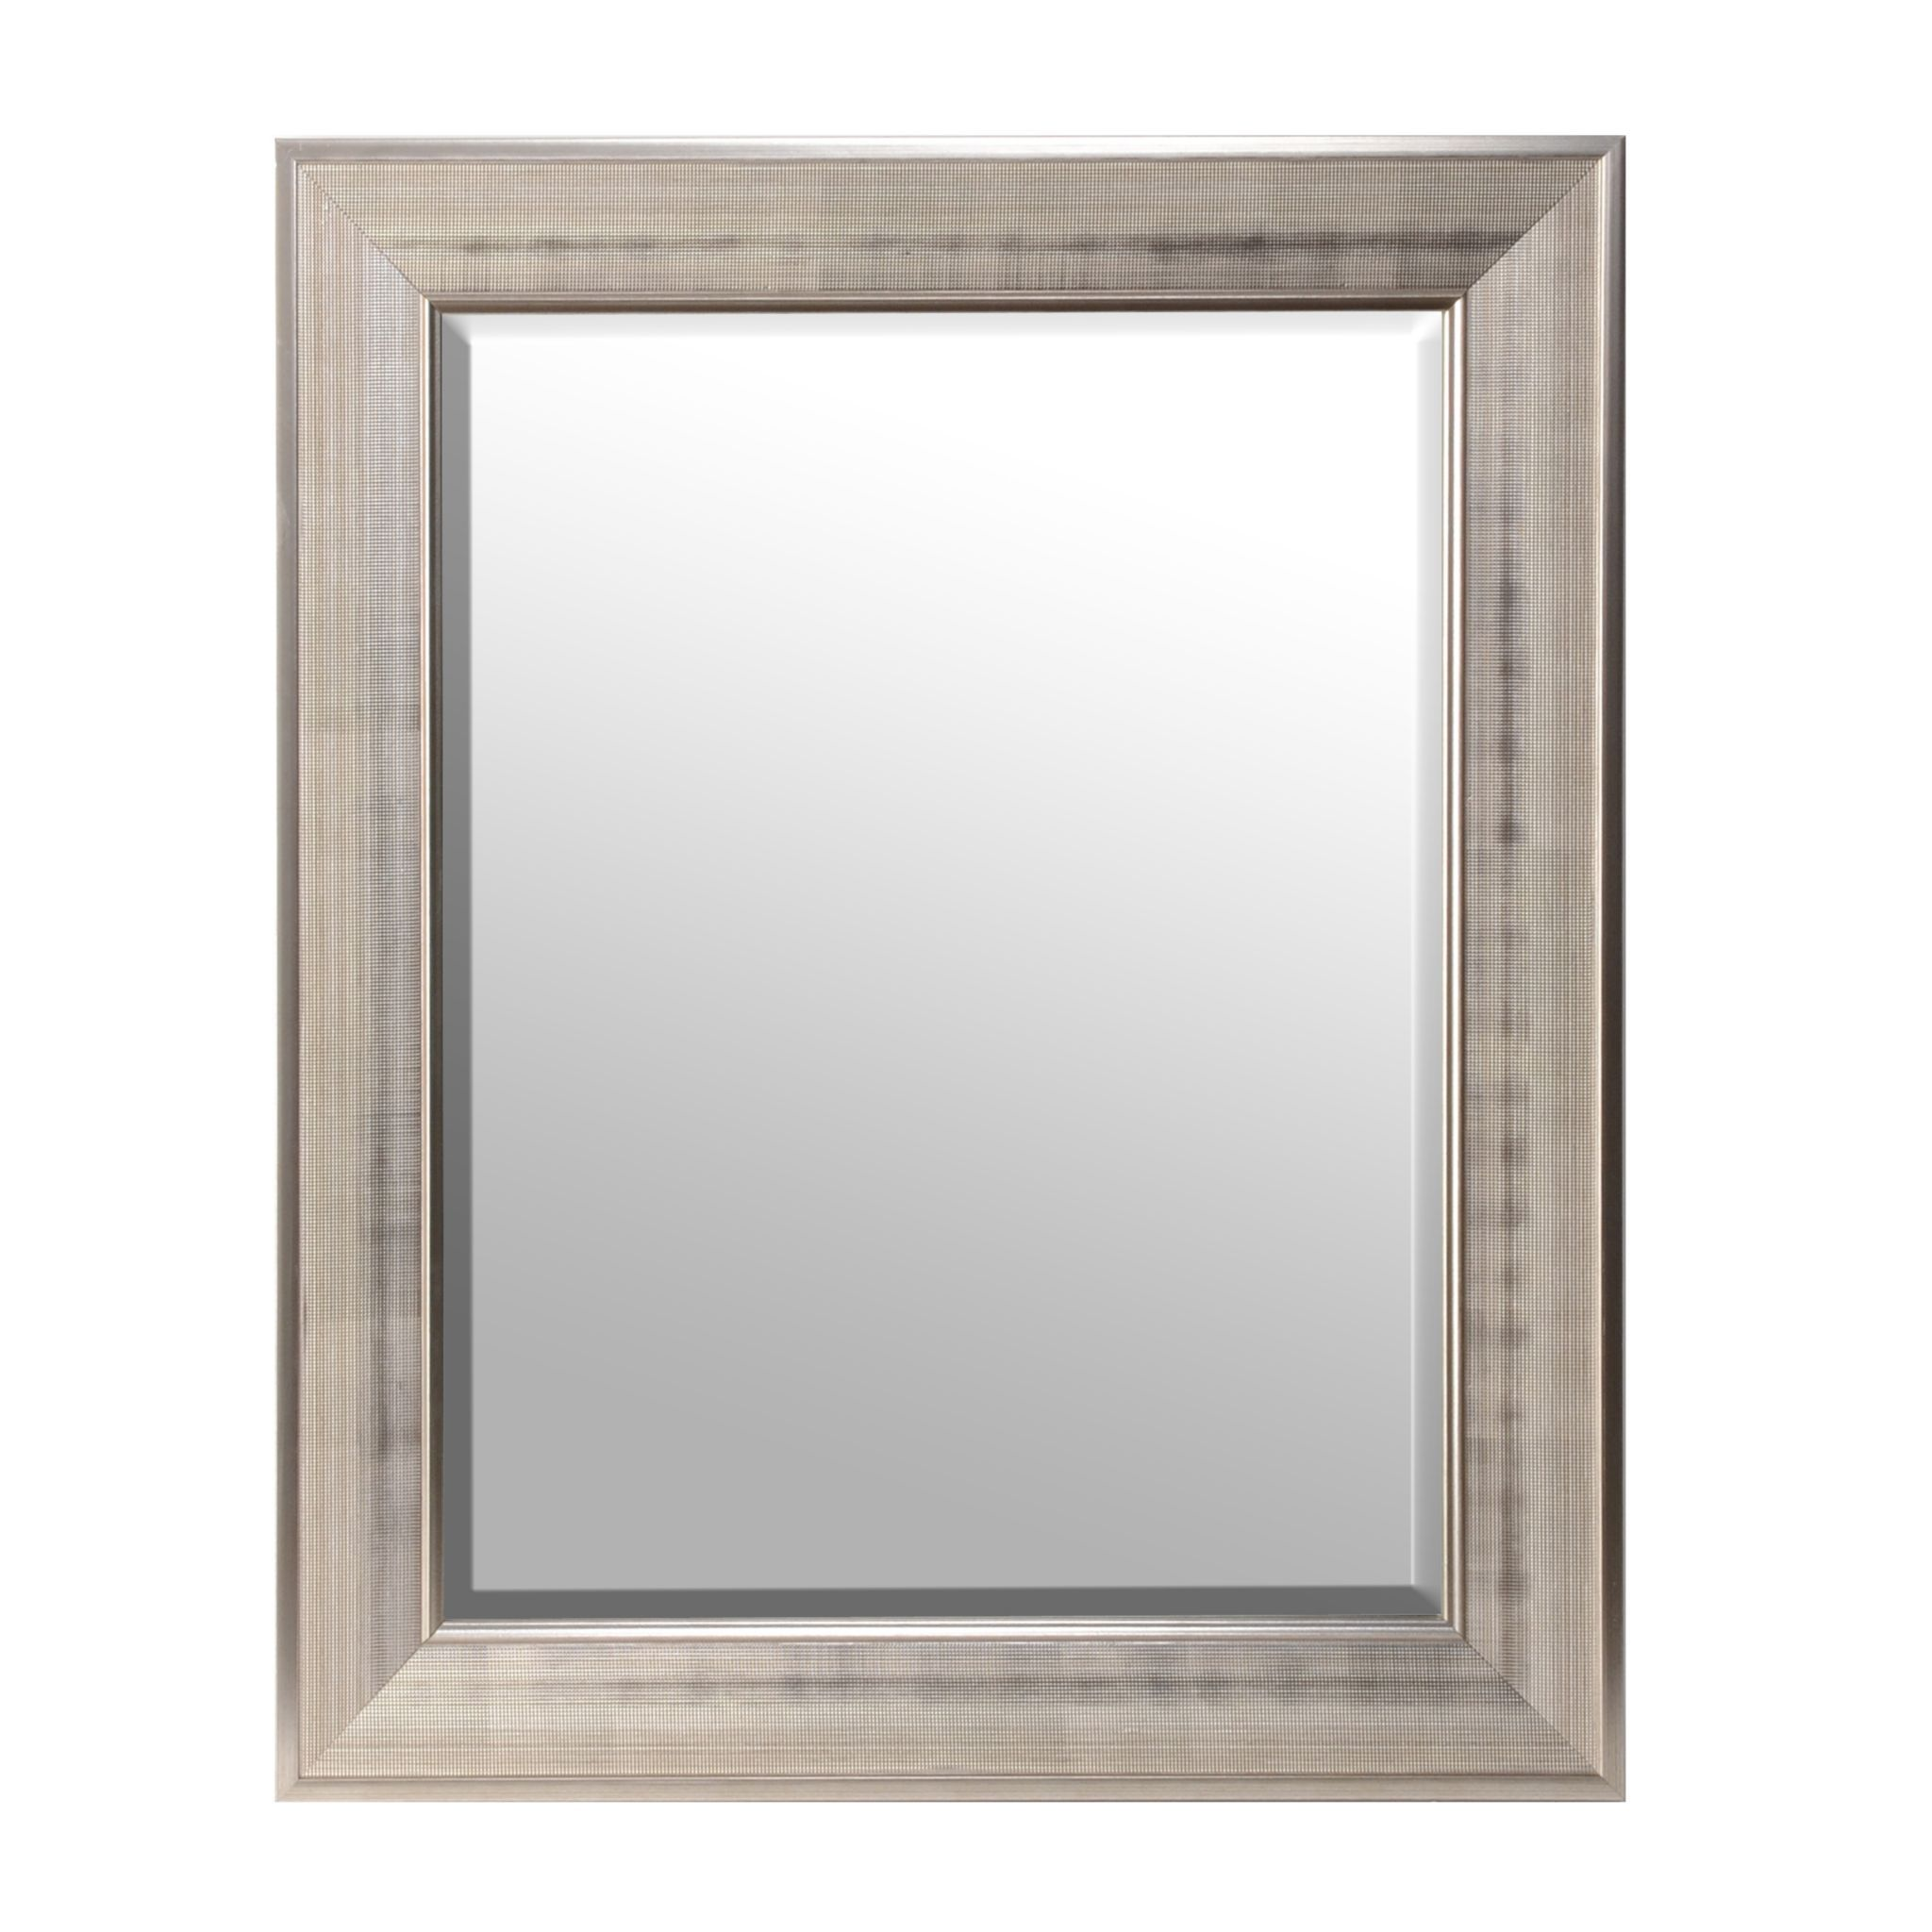 Silver Framed Bathroom Mirrors silver grid framed mirror, 30x36 | kirklands | bedroom | pinterest